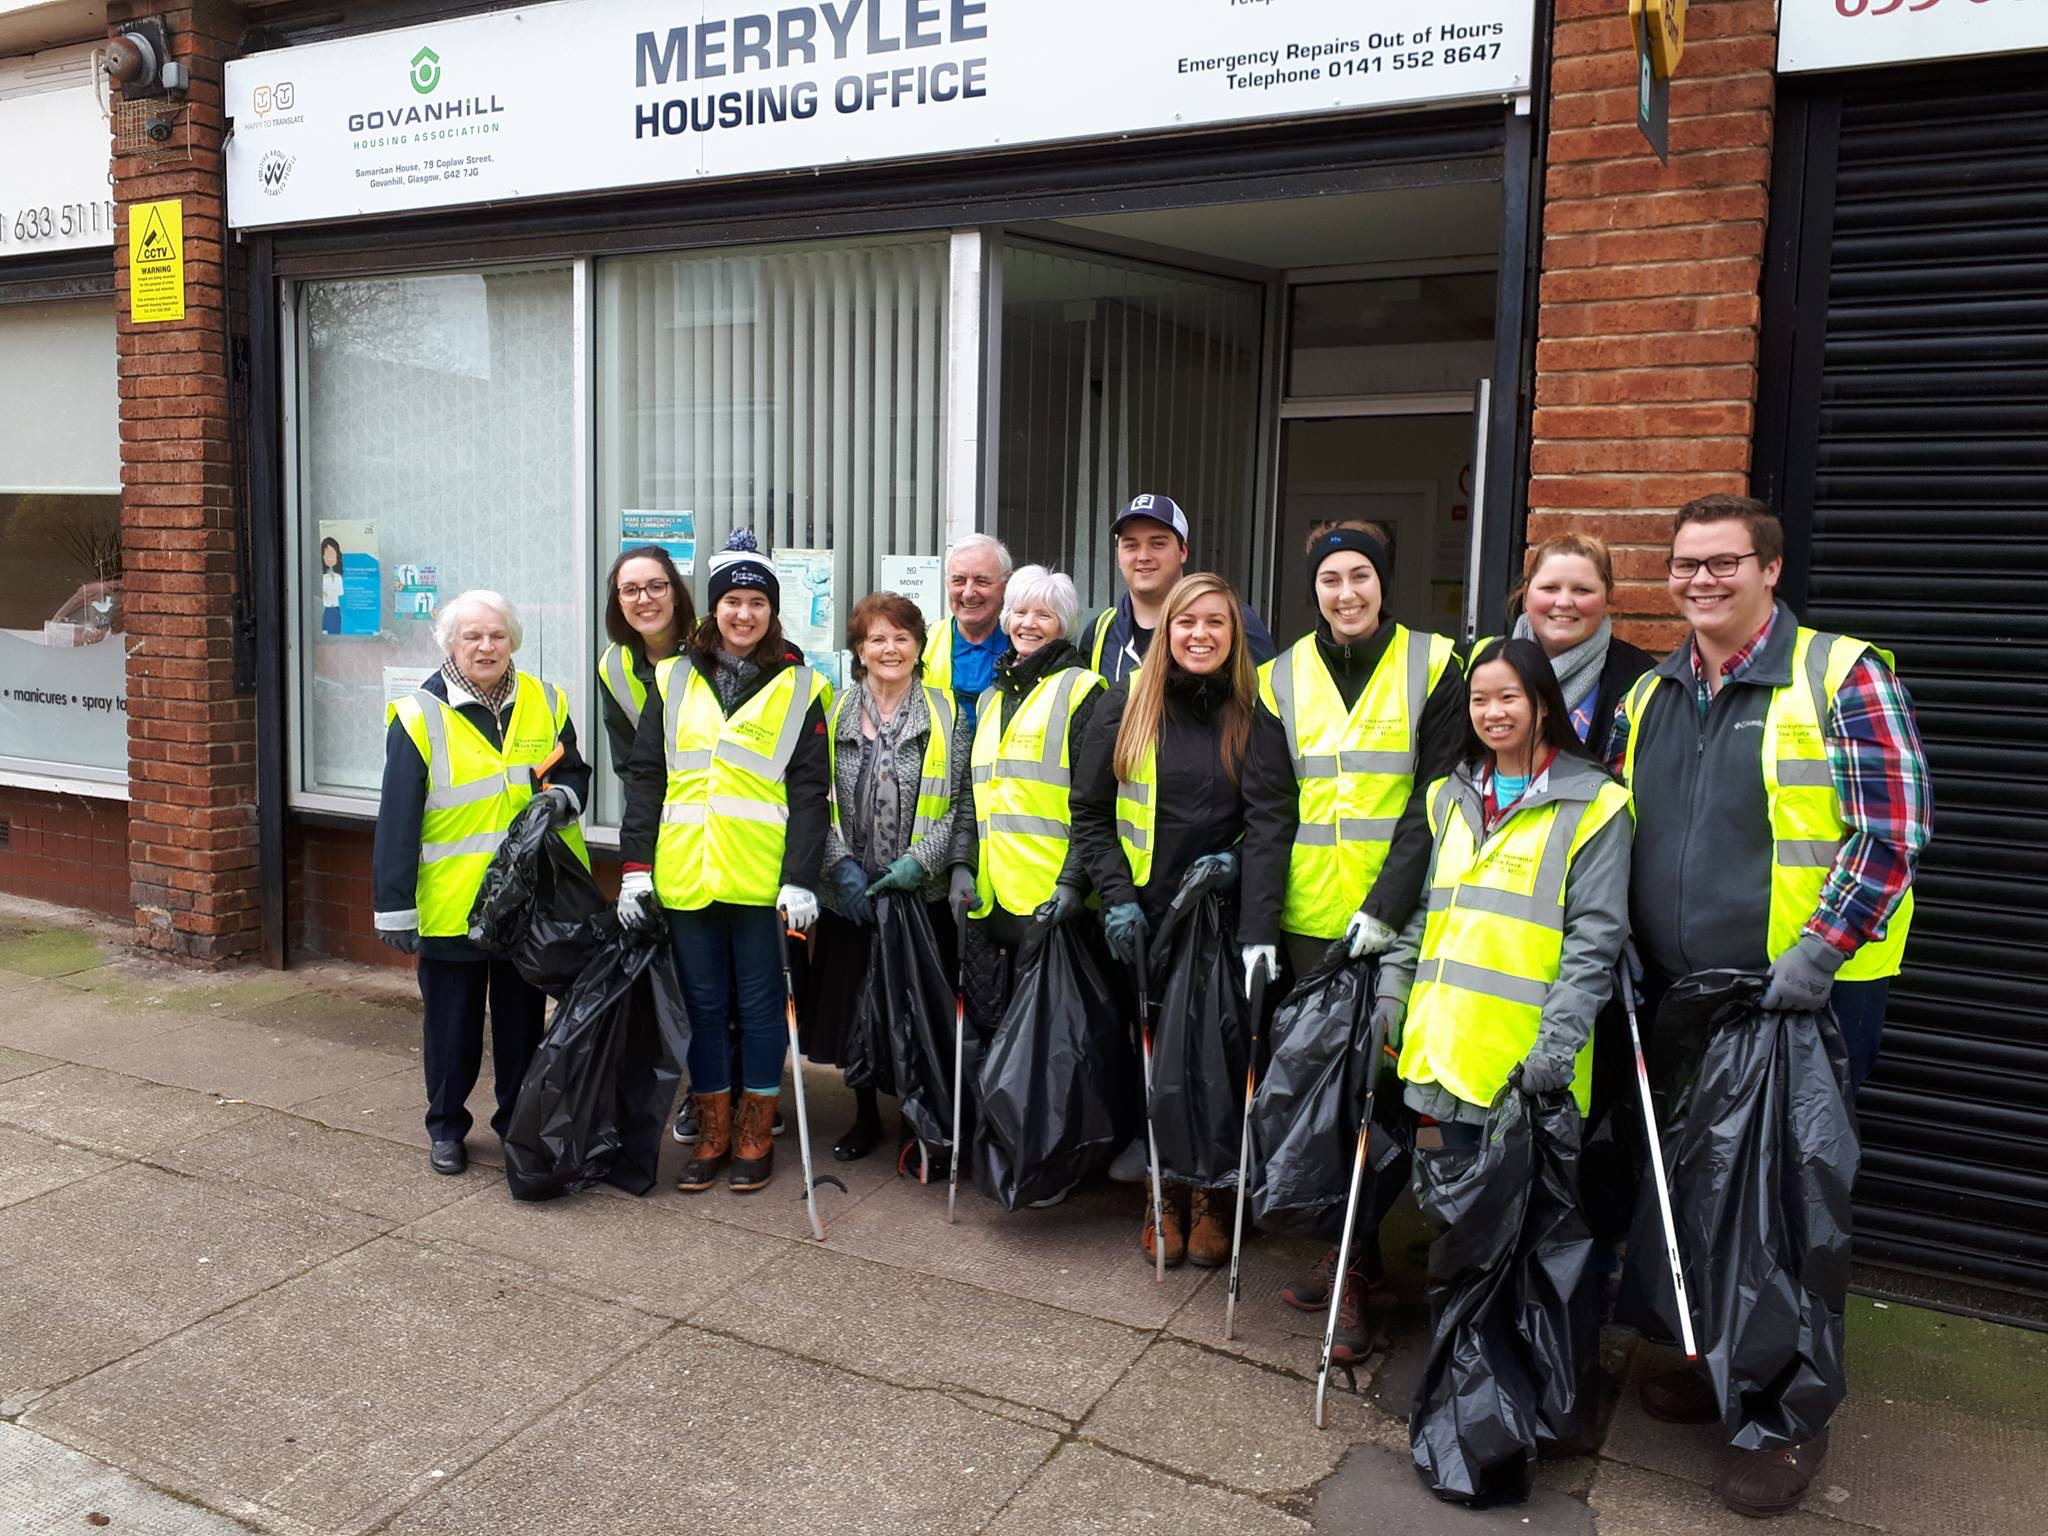 Our community clean-up crew in Glasgow, Scotland